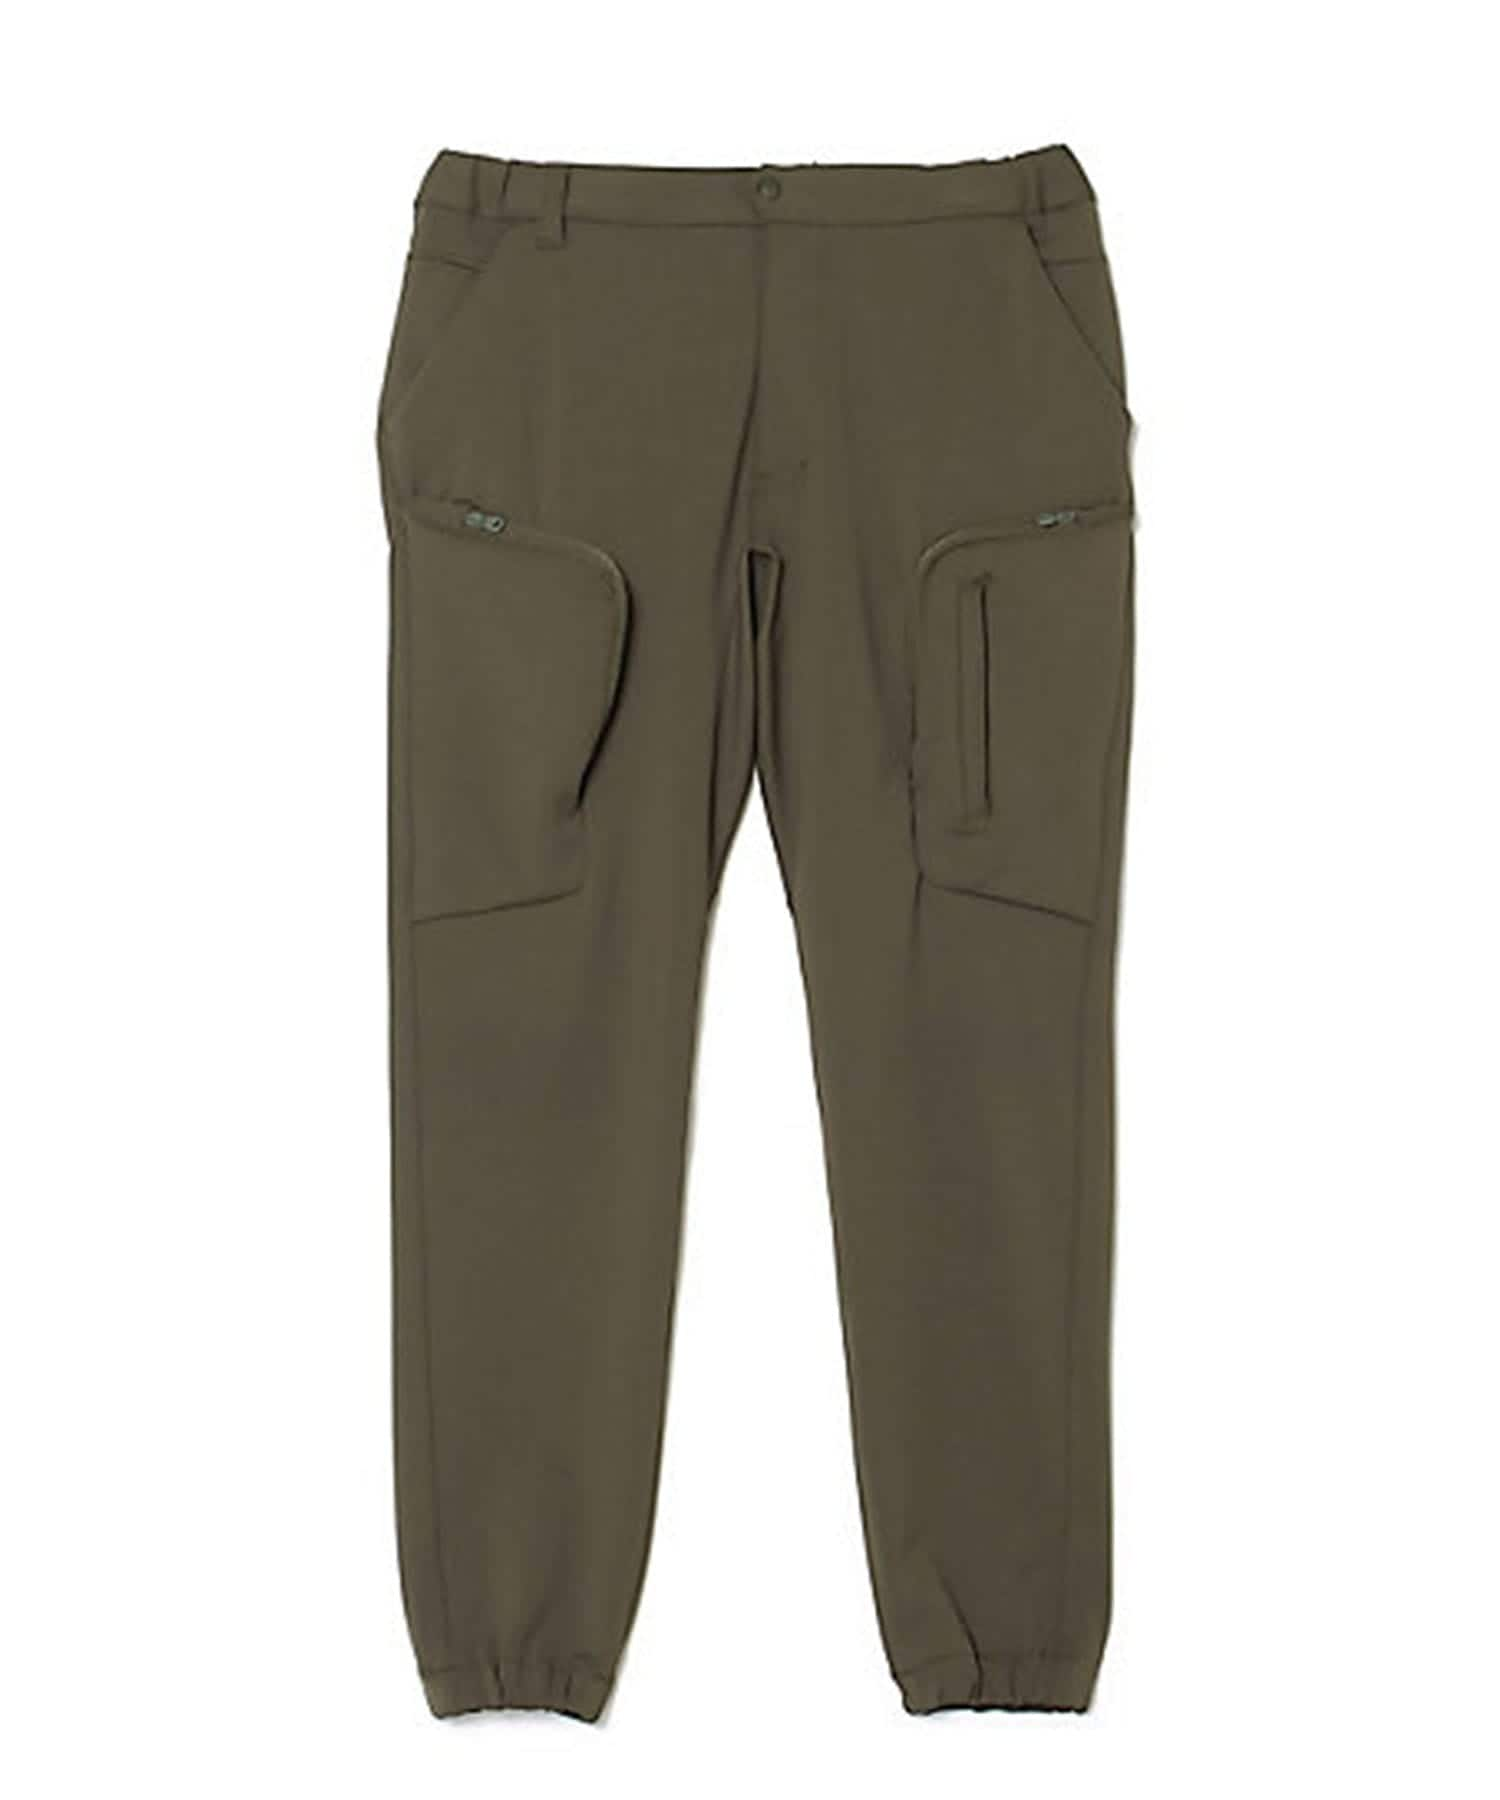 JERSEY TECH CARGO PANTS White Mountaineering